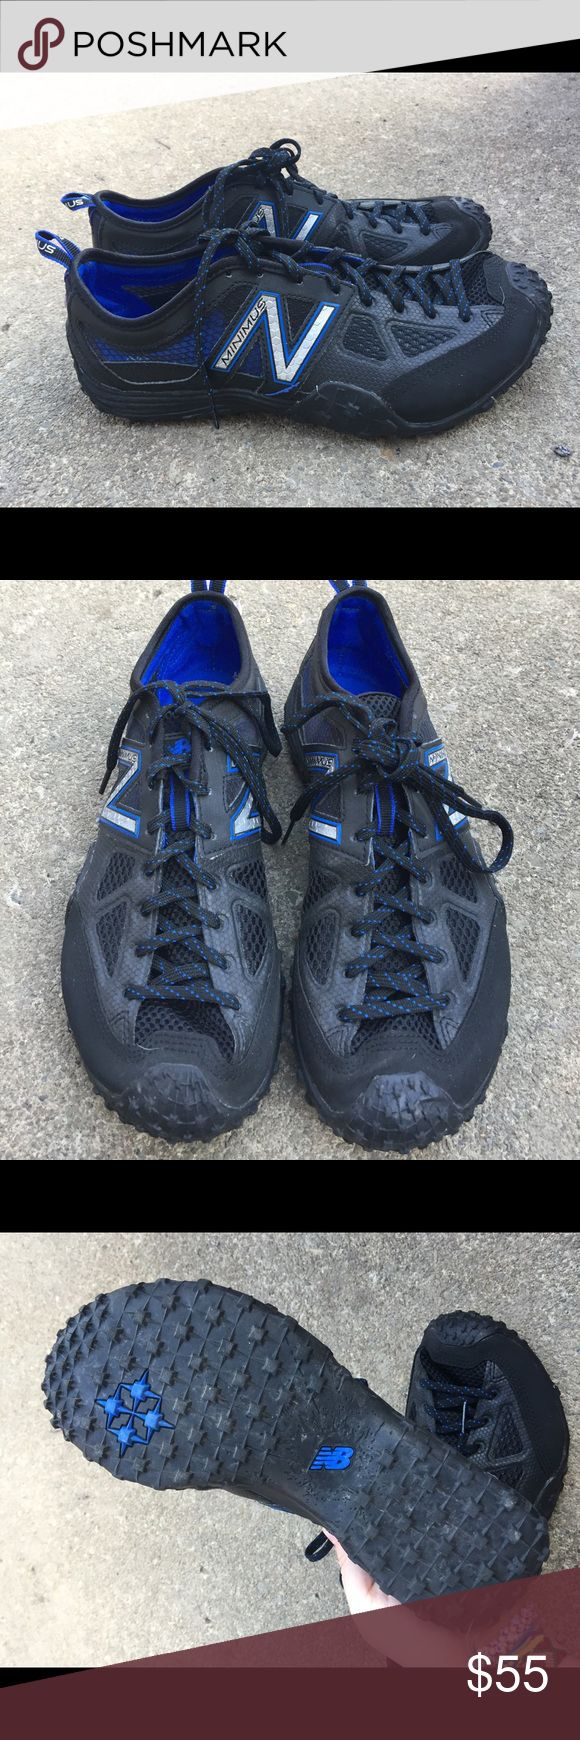 Men's New Balance Minimus Running Sneakers 8.5M Men's New Balance Minimus Running Sneakers 8.5M These are Black & Blue Worn Once! Look brand new New Balance Shoes Sneakers